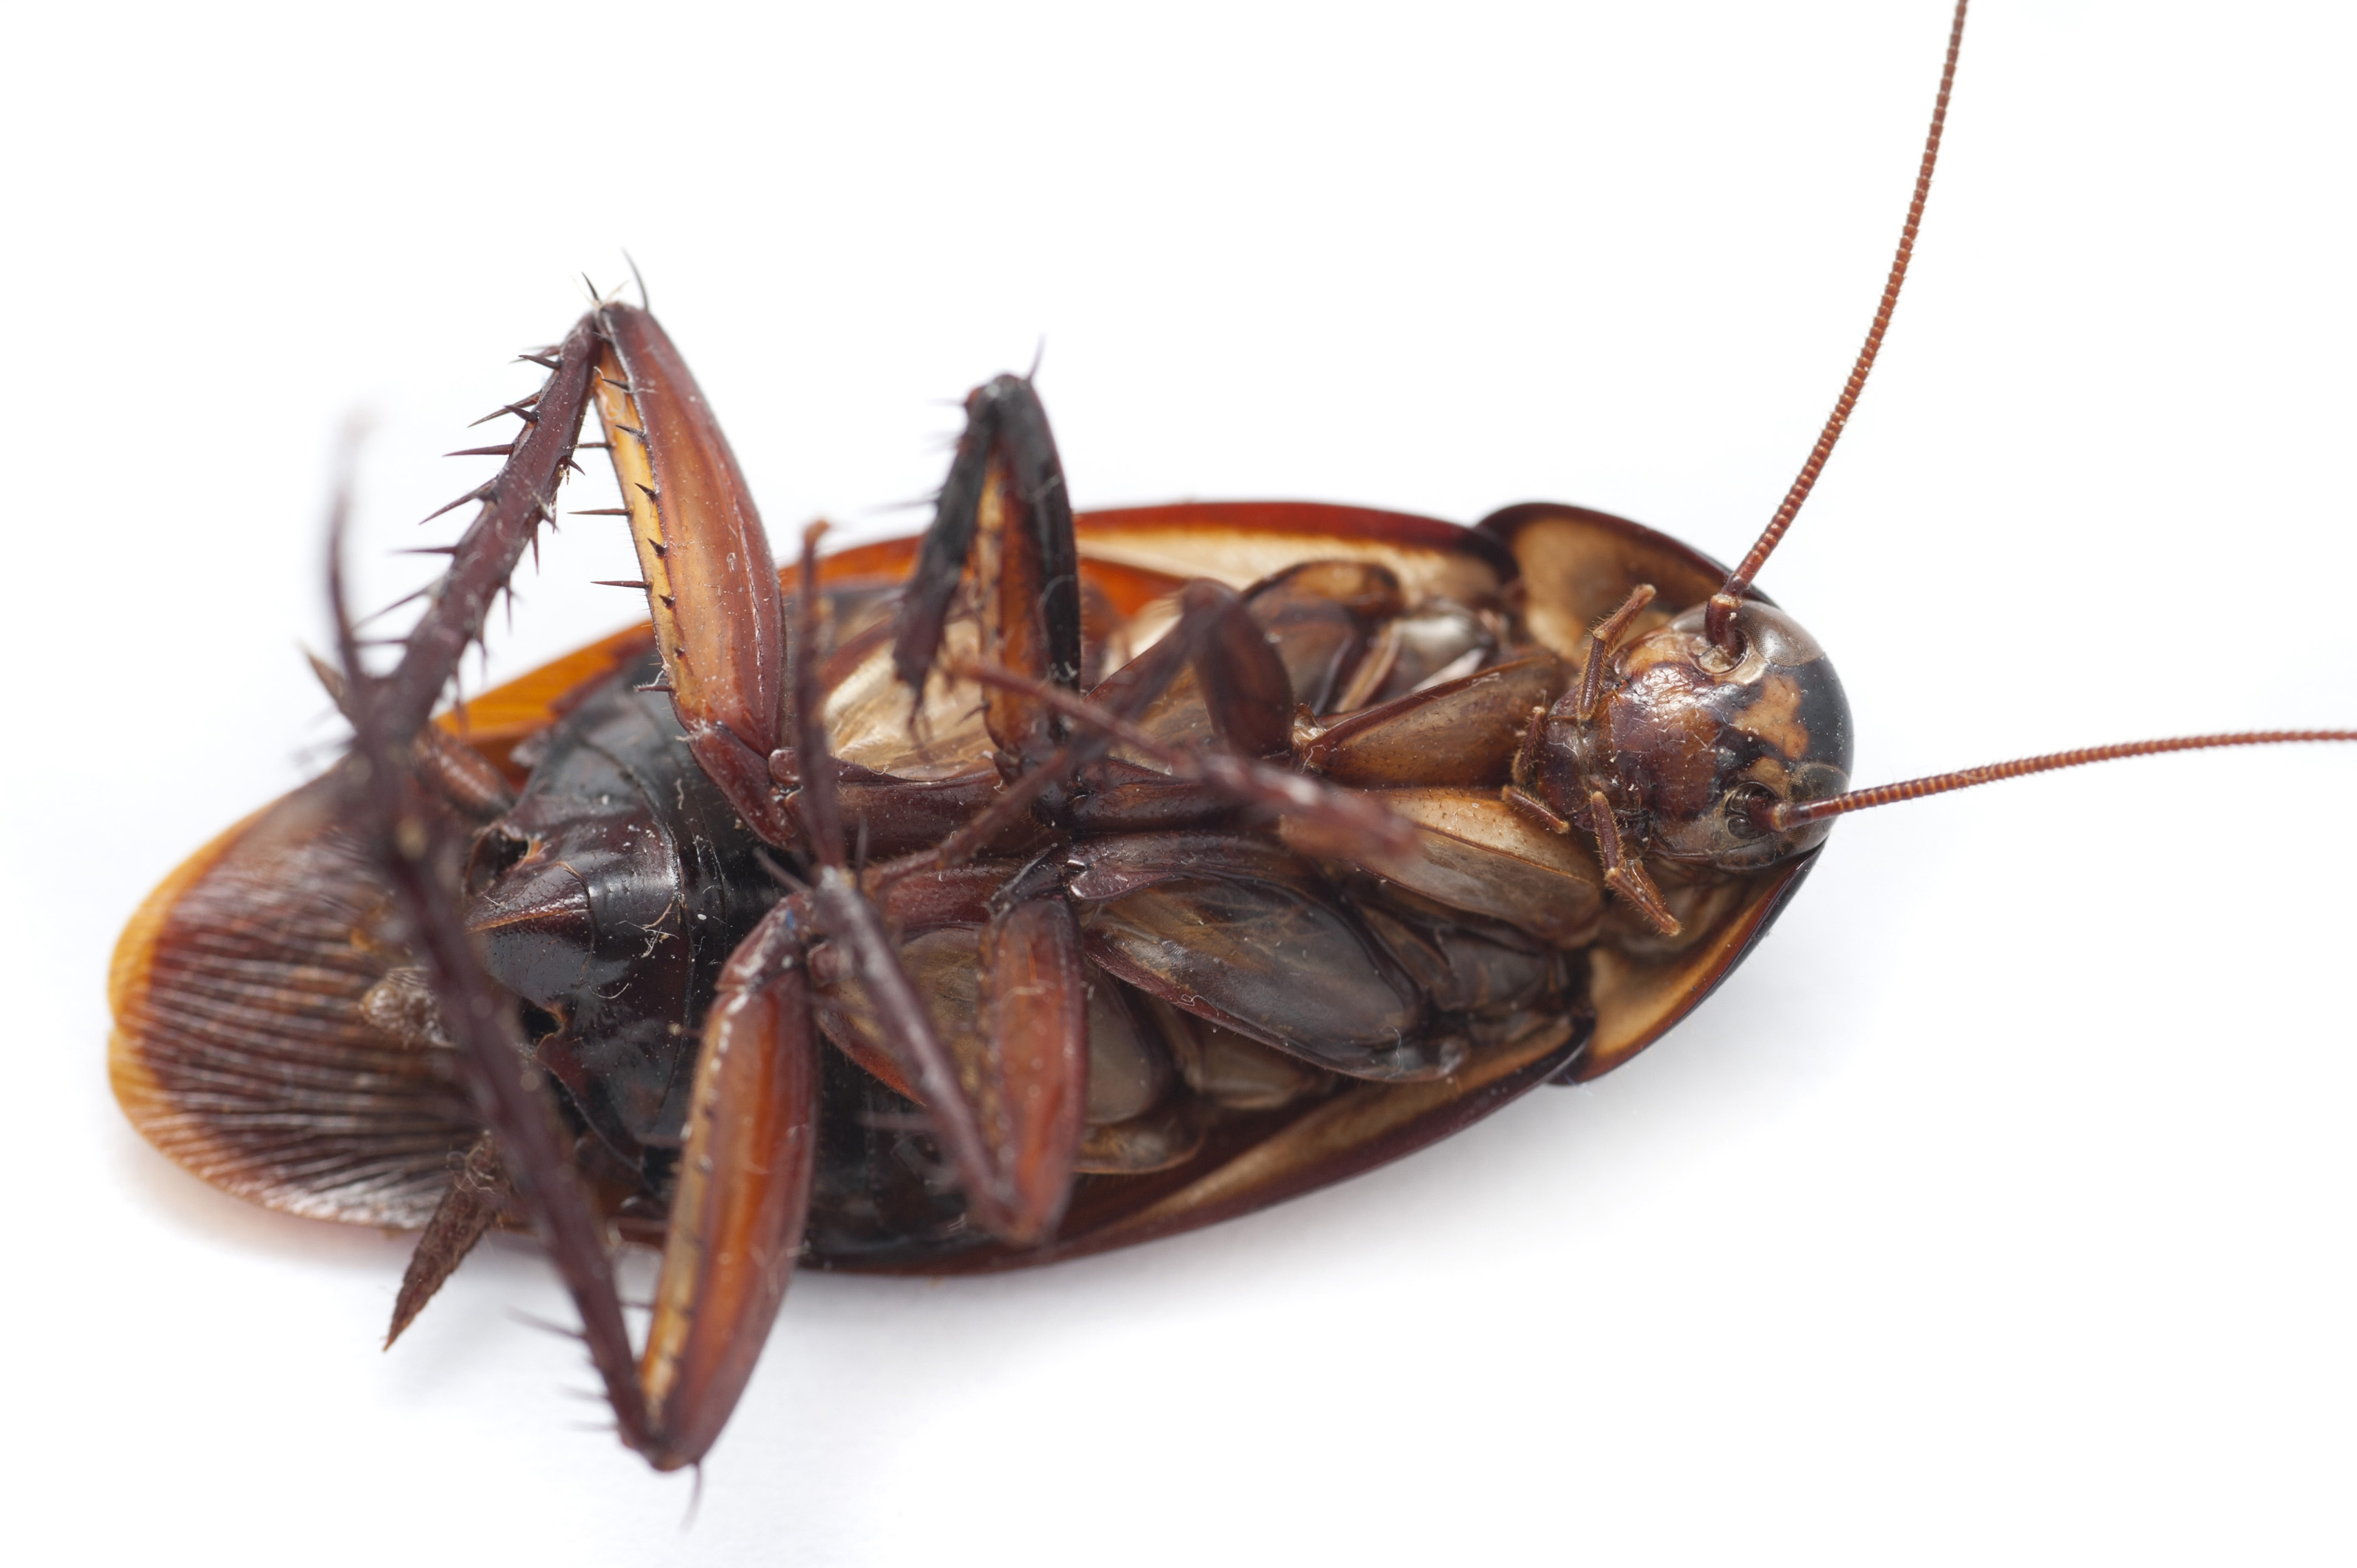 Cockroach Widescreen